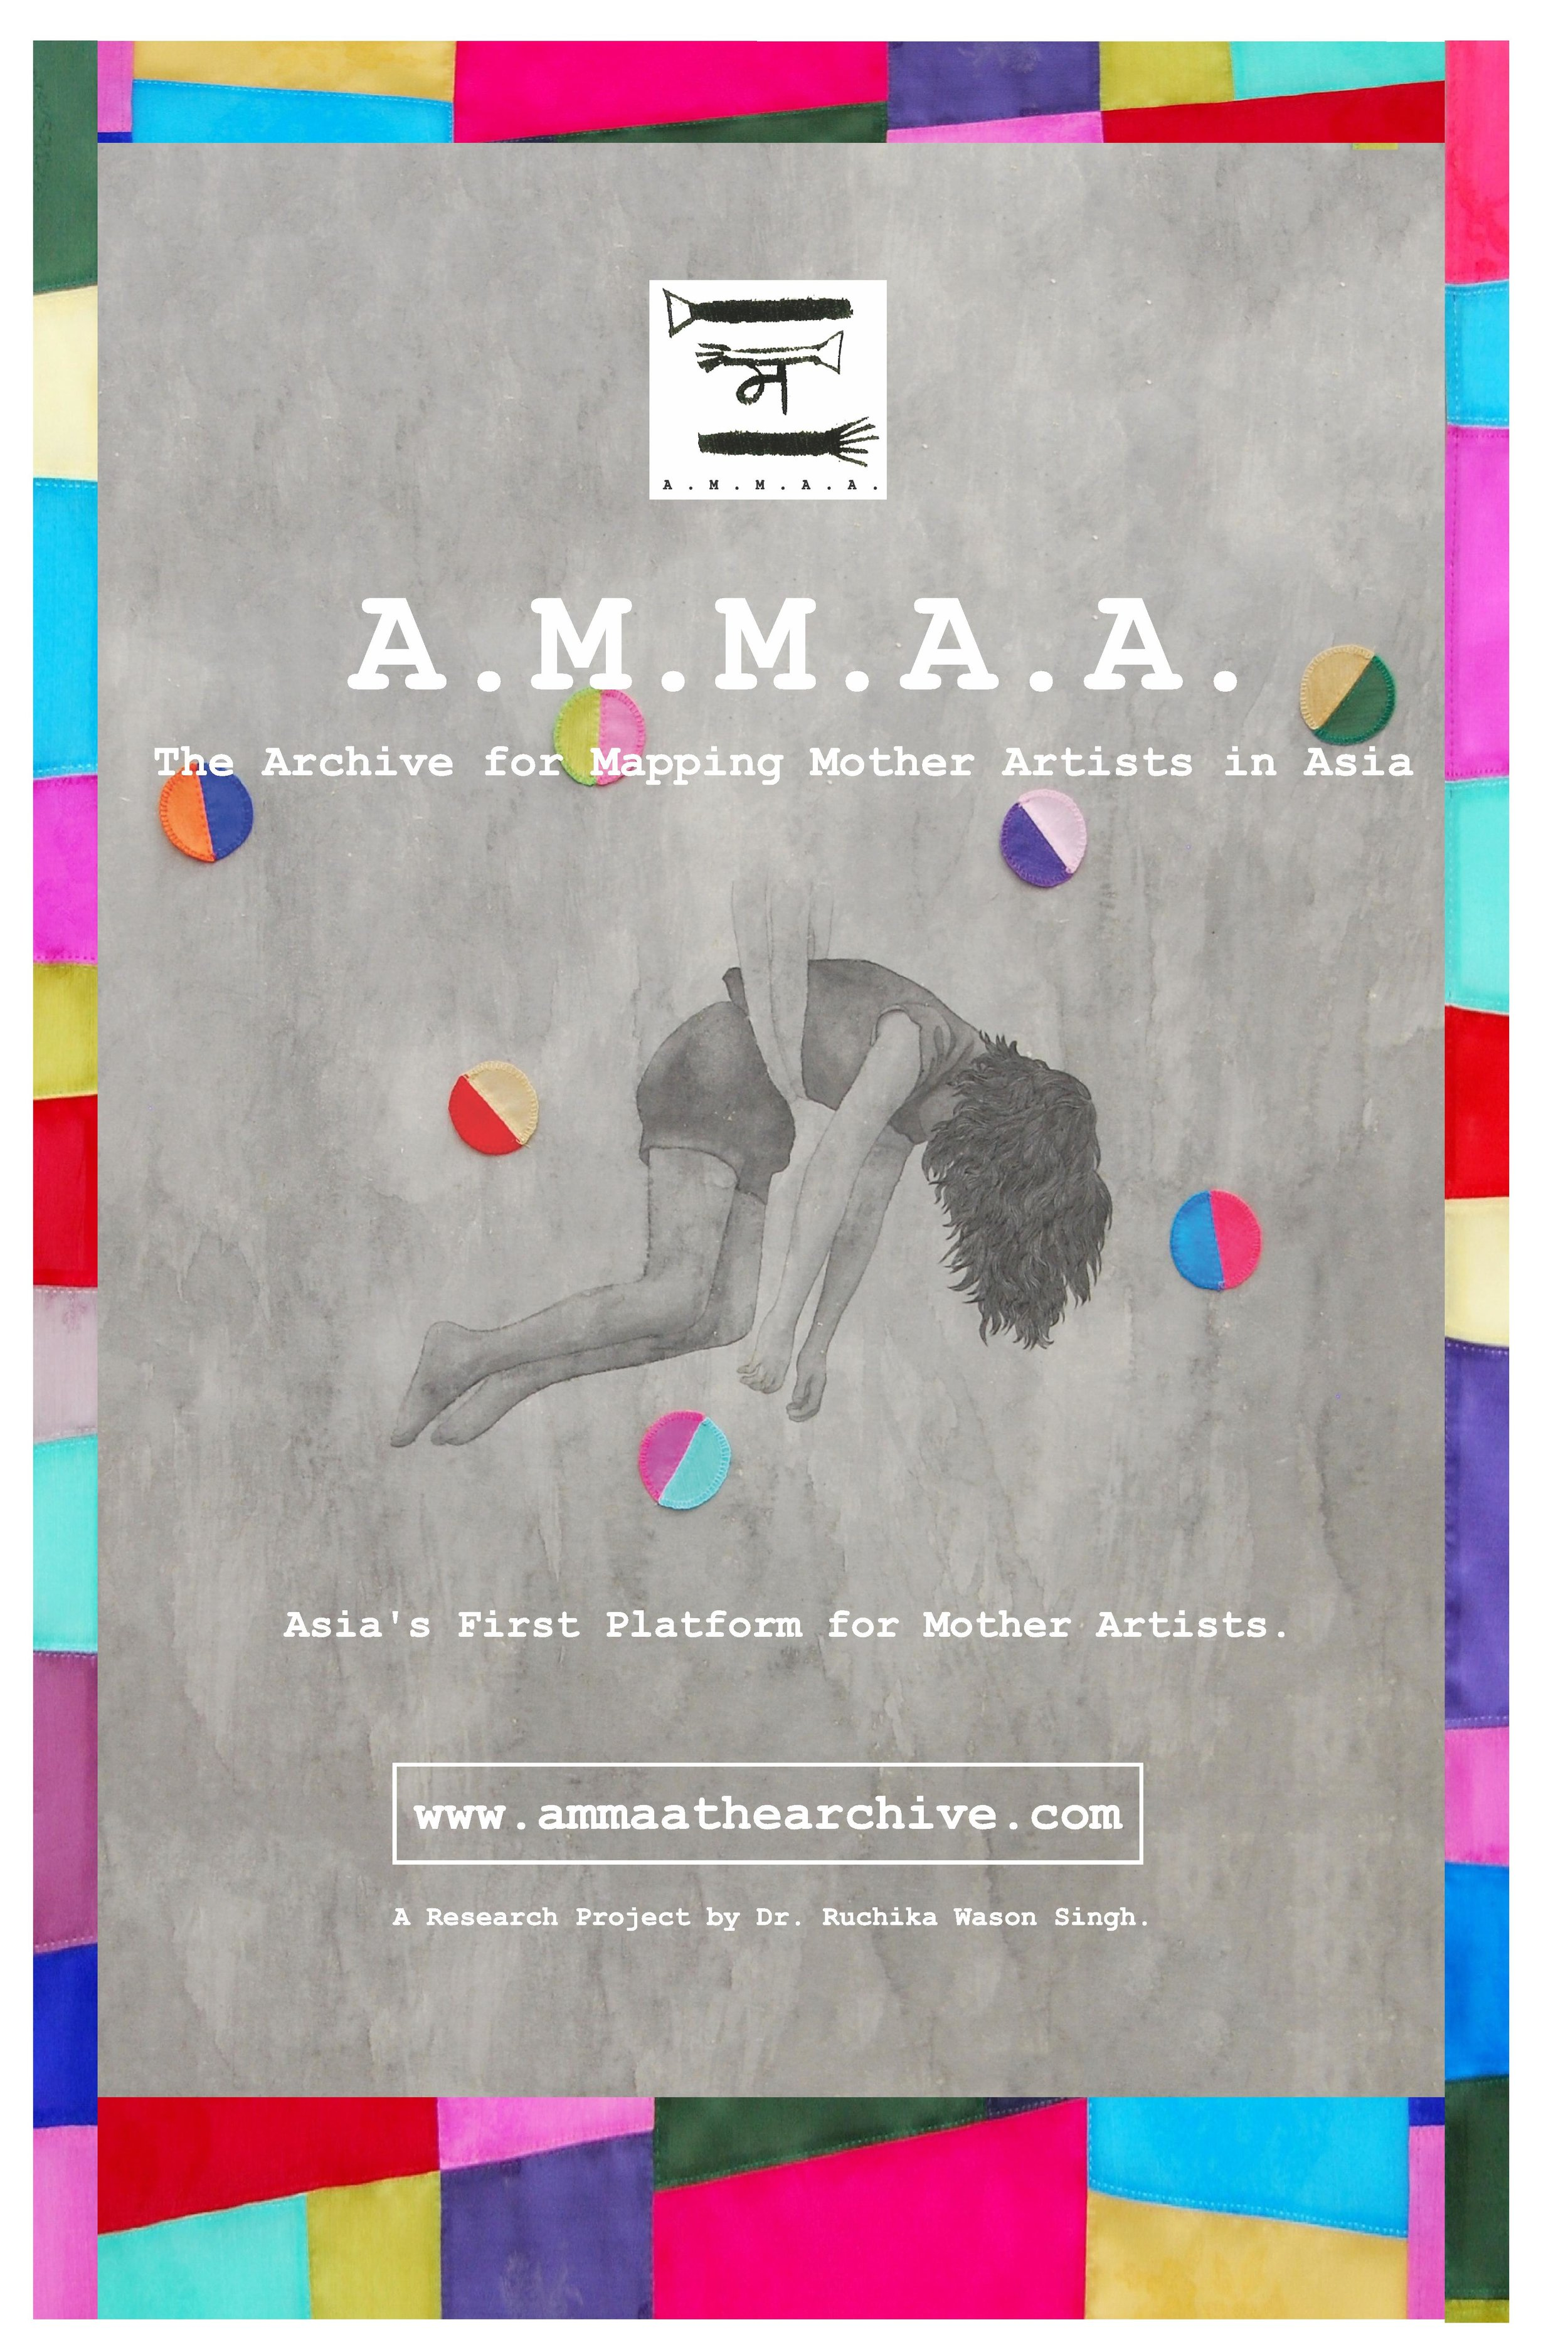 Announcing the launch of the A.M.M.A.A. Website !!    www.ammaathearchive.com